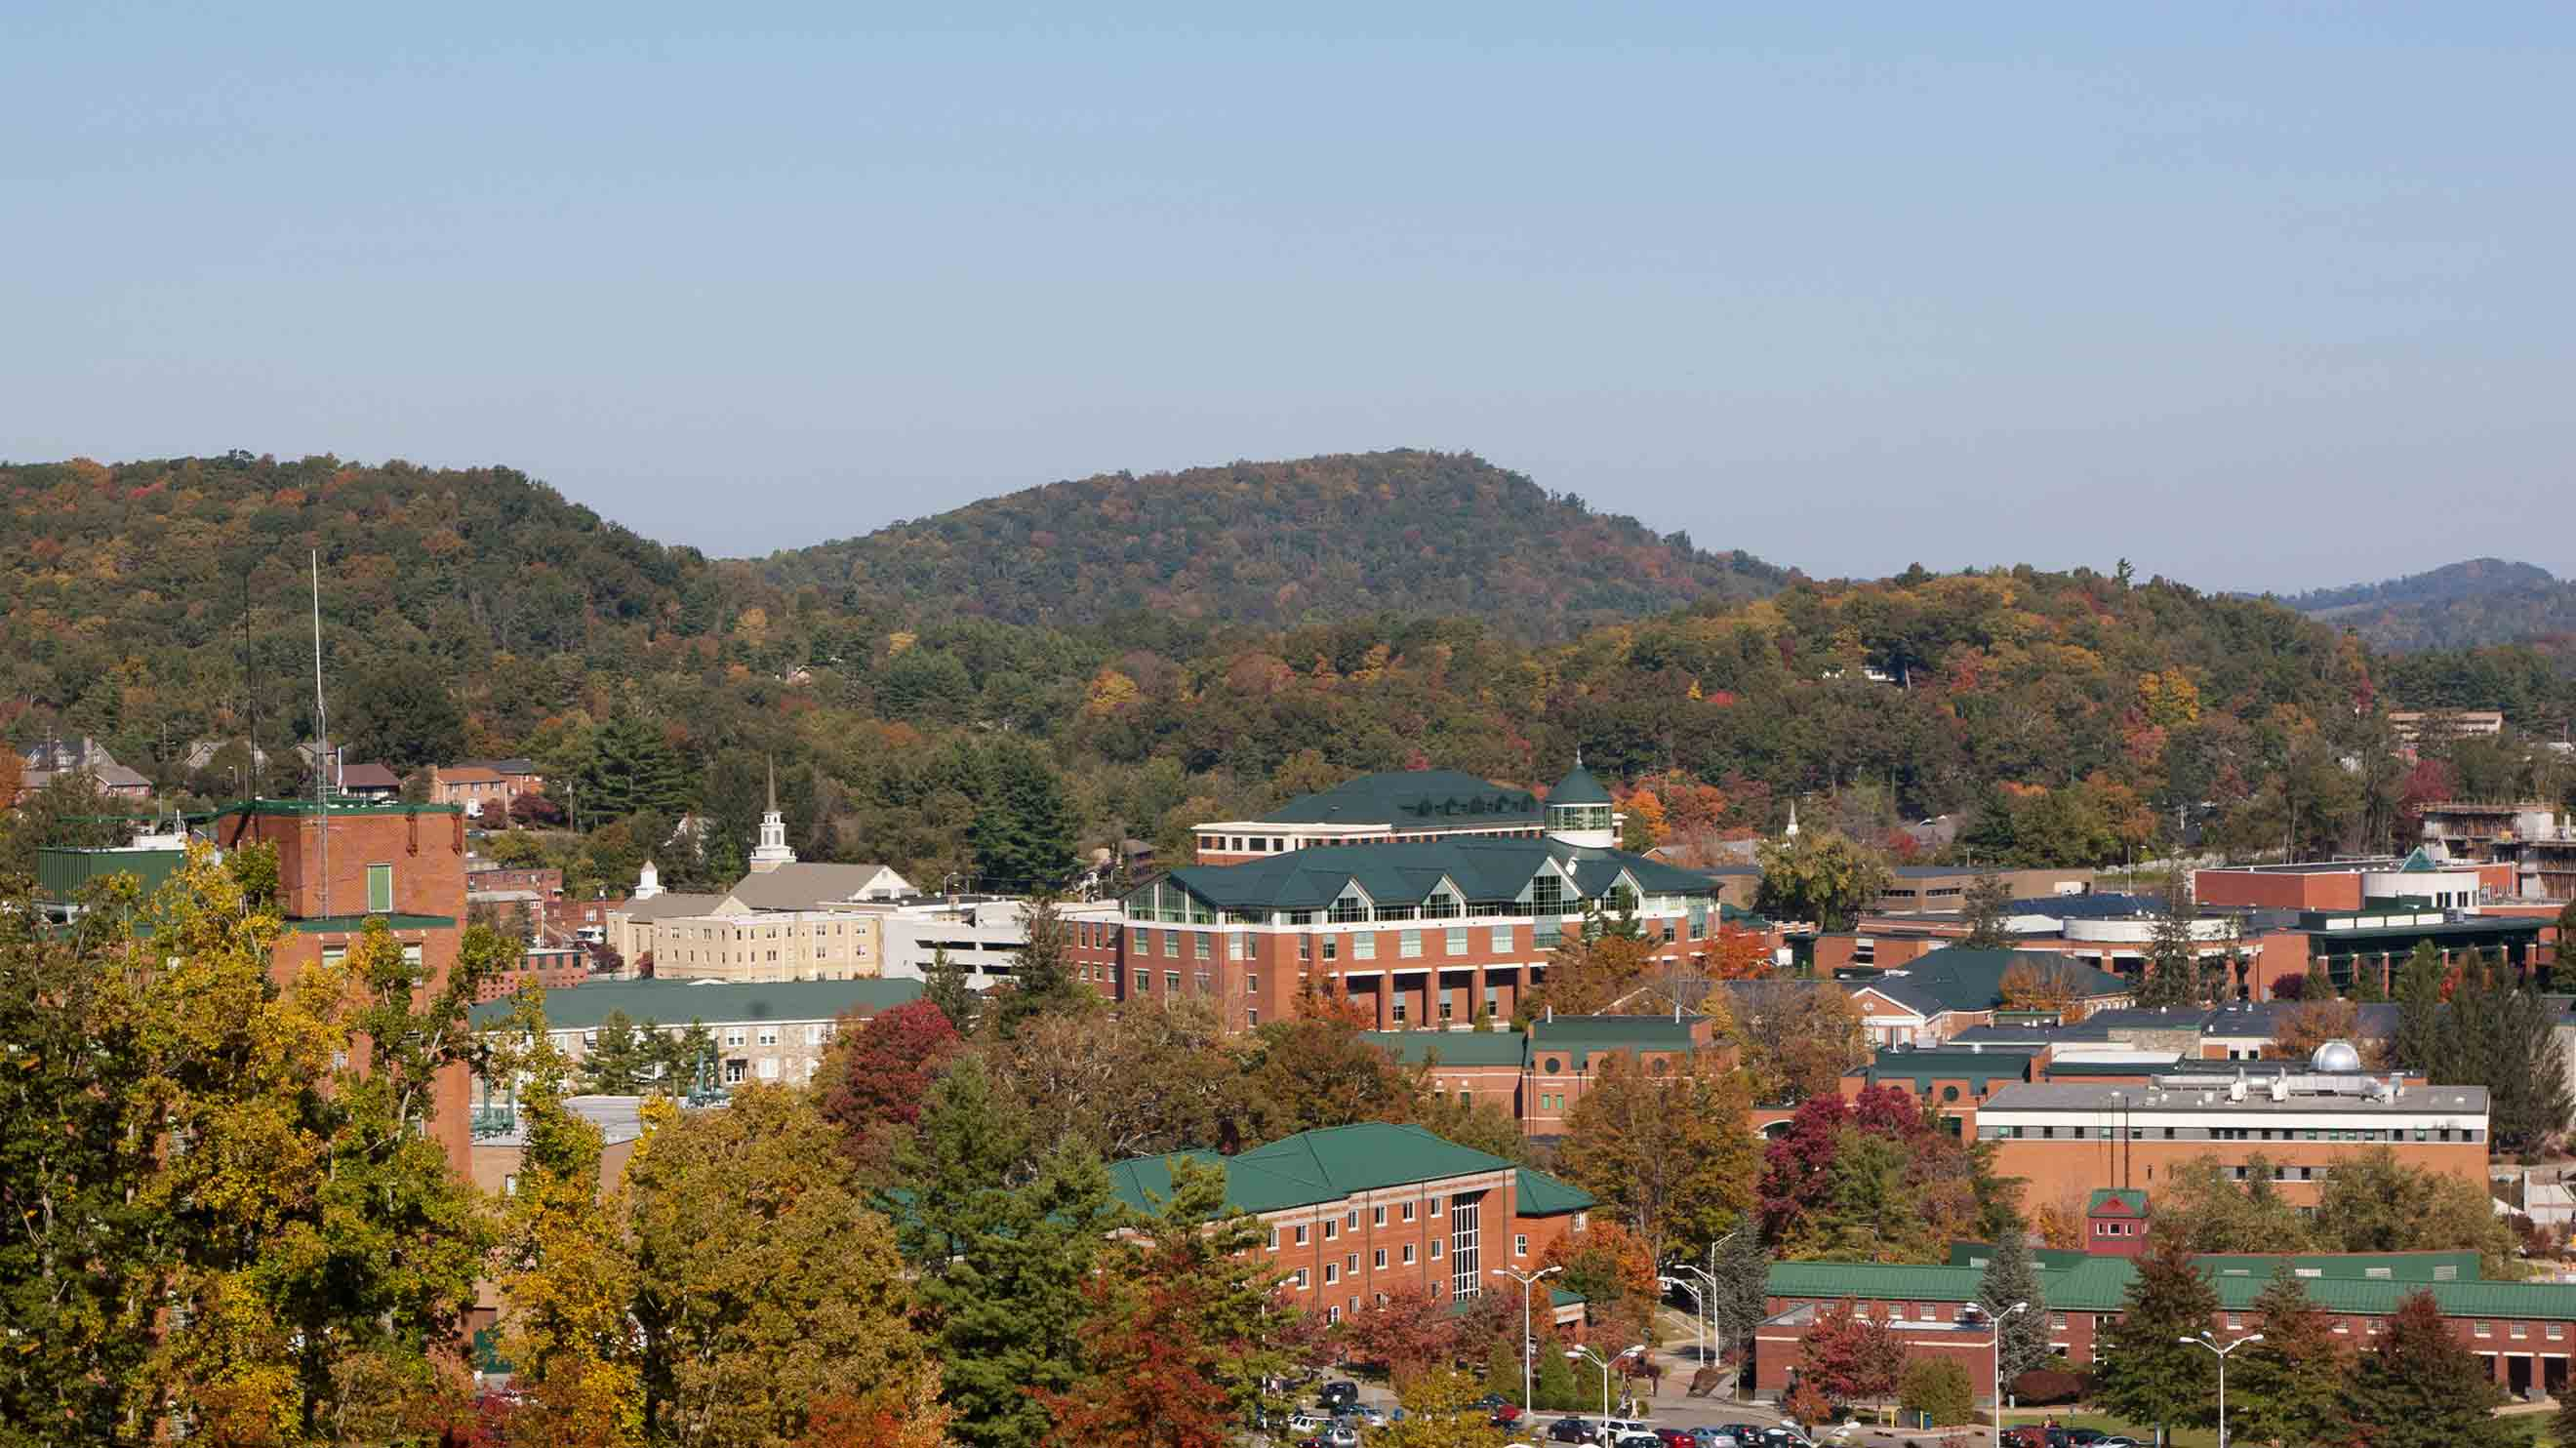 10 Best Hotels Closest to Appalachian State University in Boone for ...